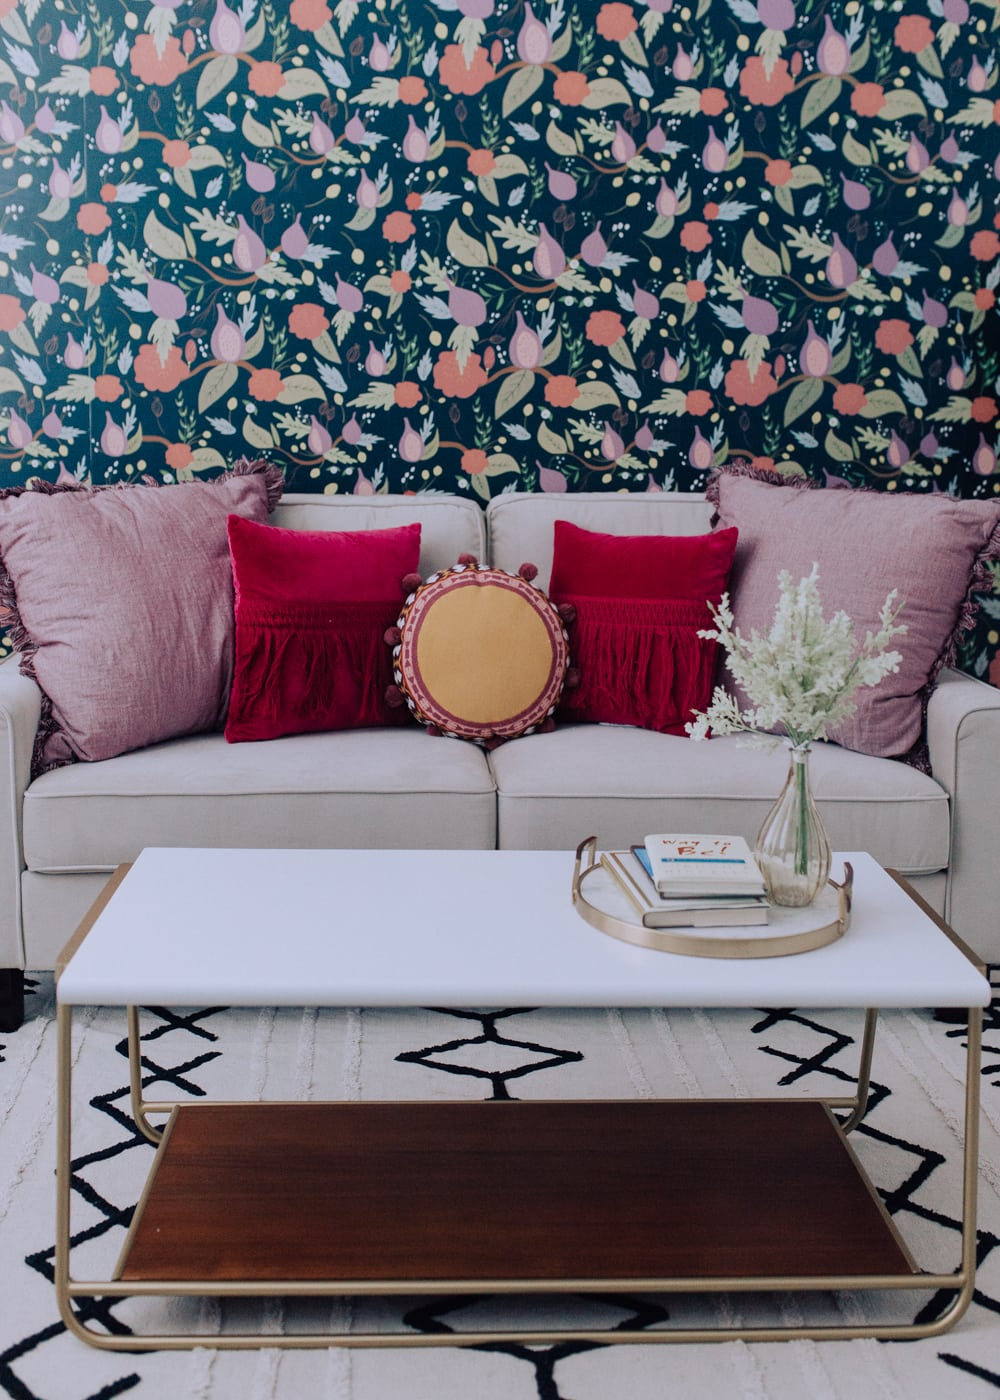 vibrant bohemian vibe with simple white touches and gold accents with pink office / office decor that is modern with a boho twist and organized / long desk and shelving unit